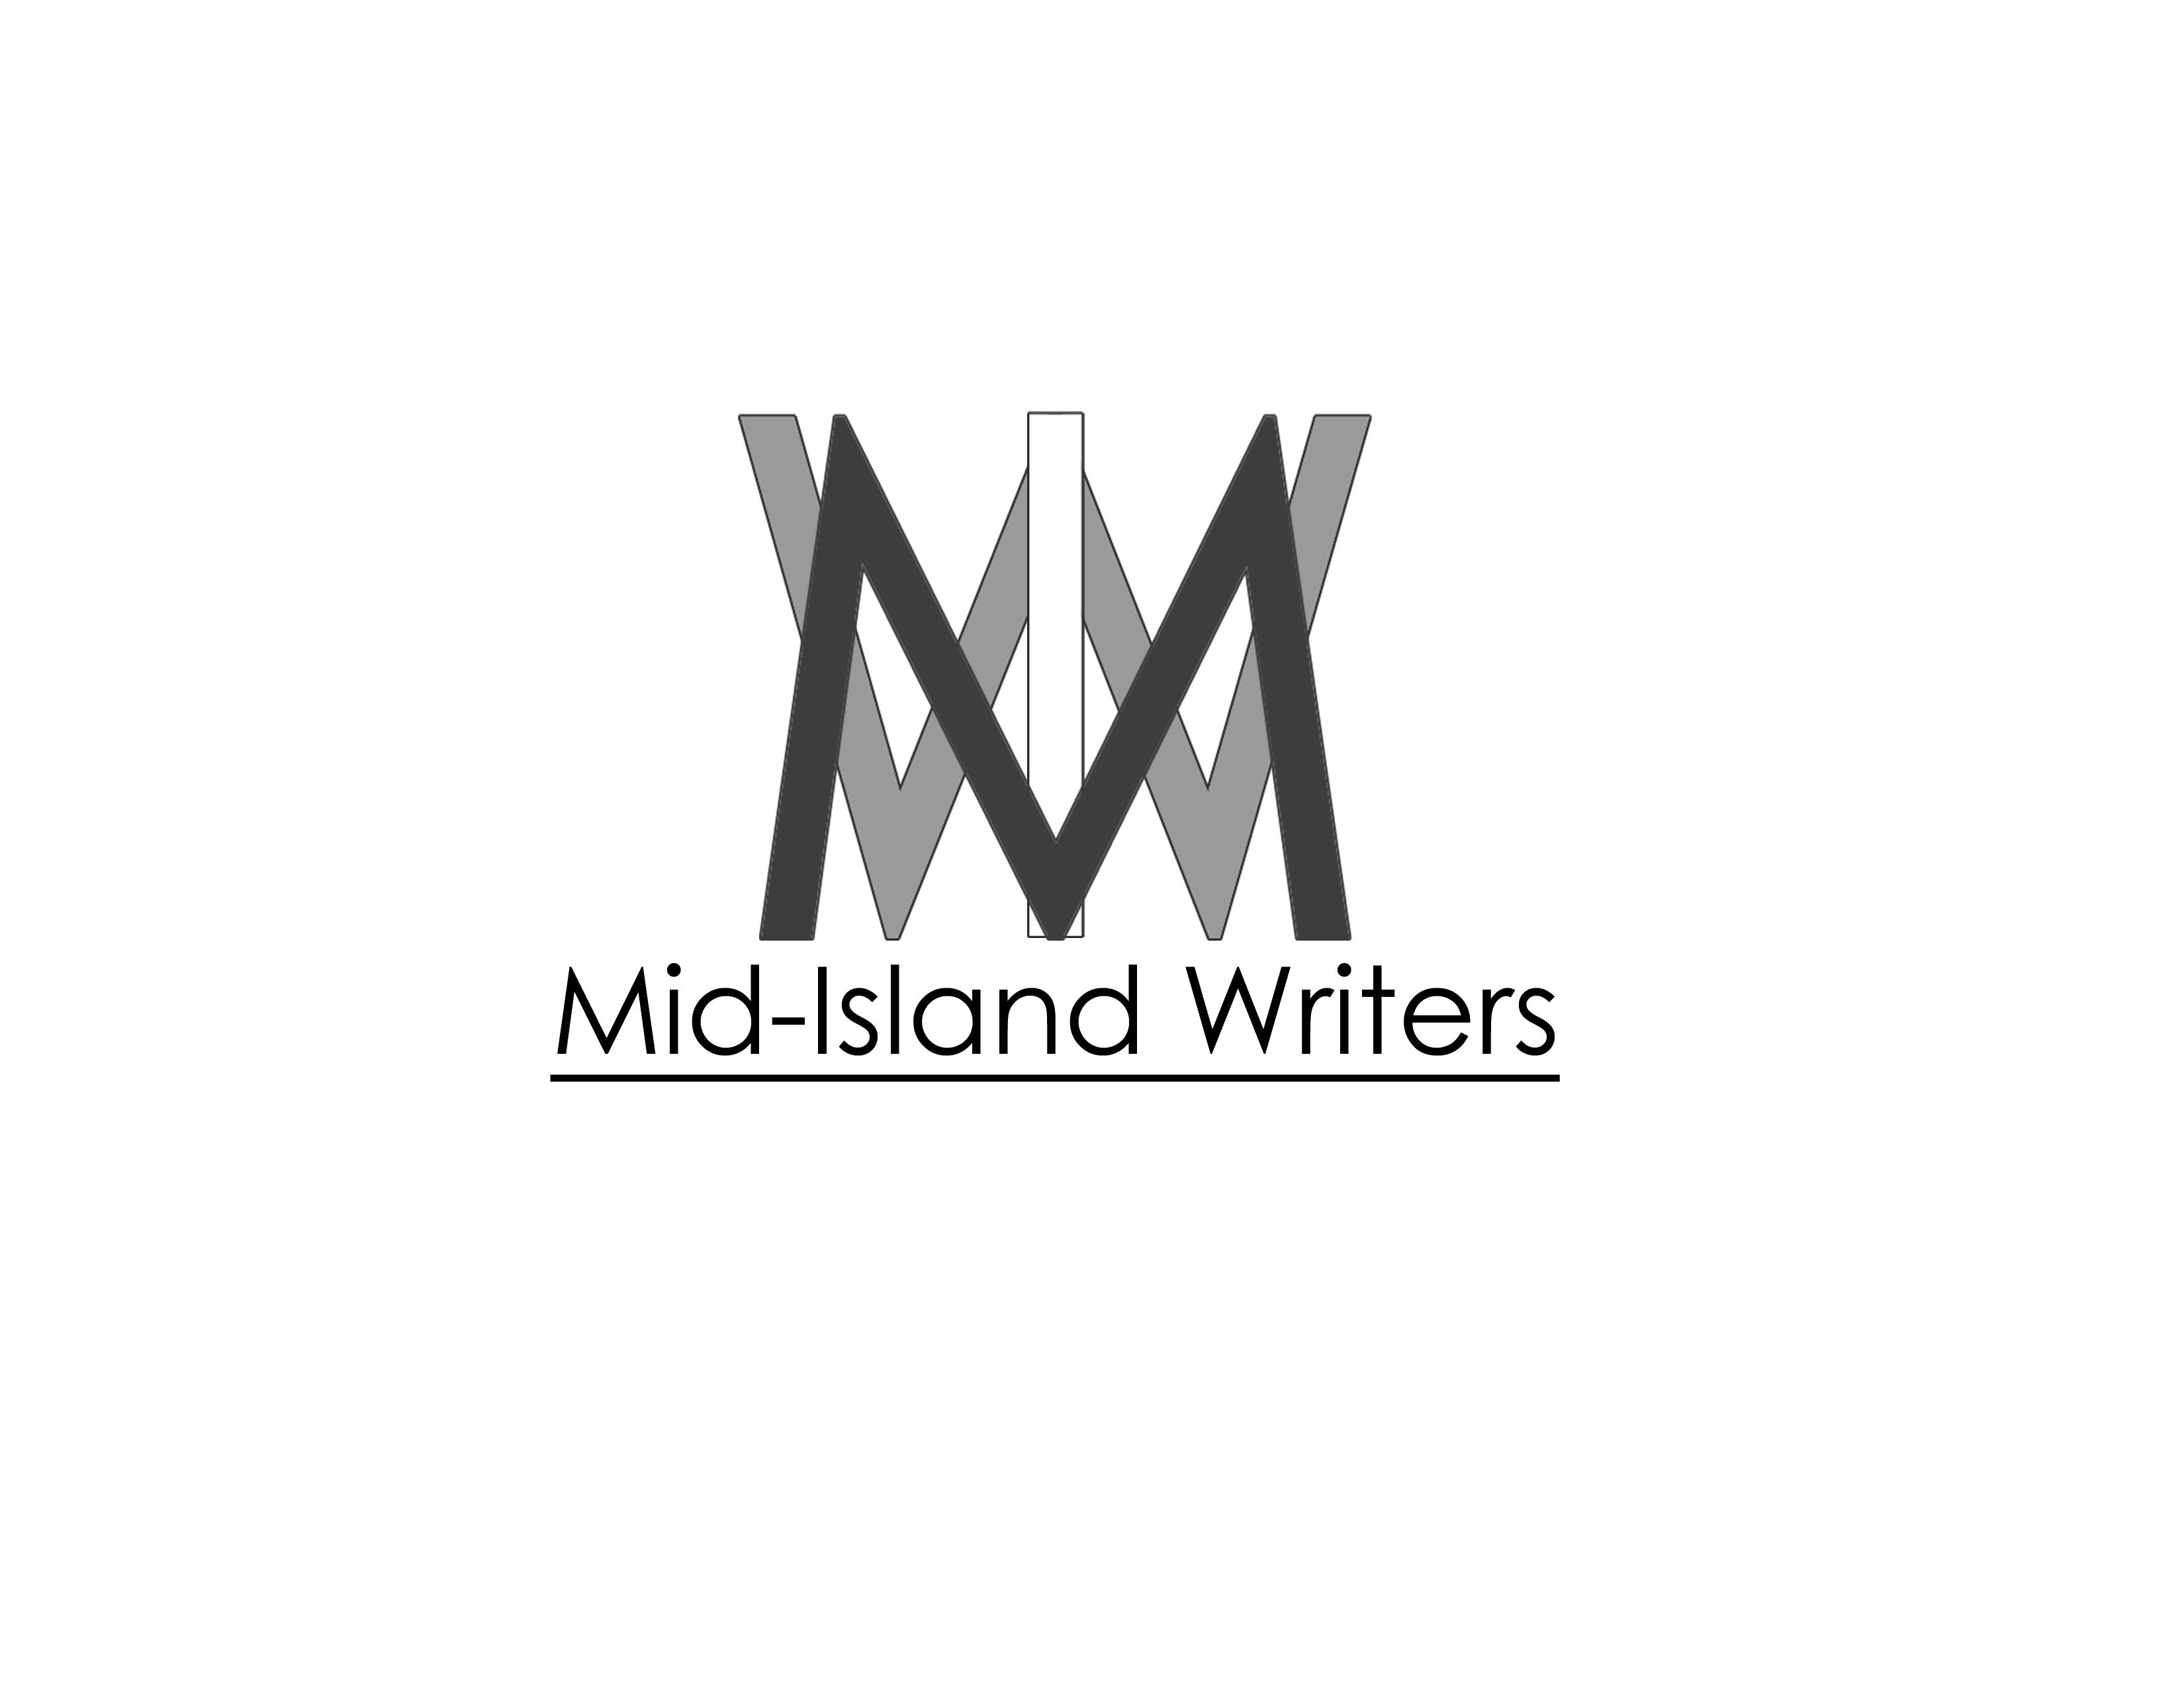 Write-In Session - 6/24/18